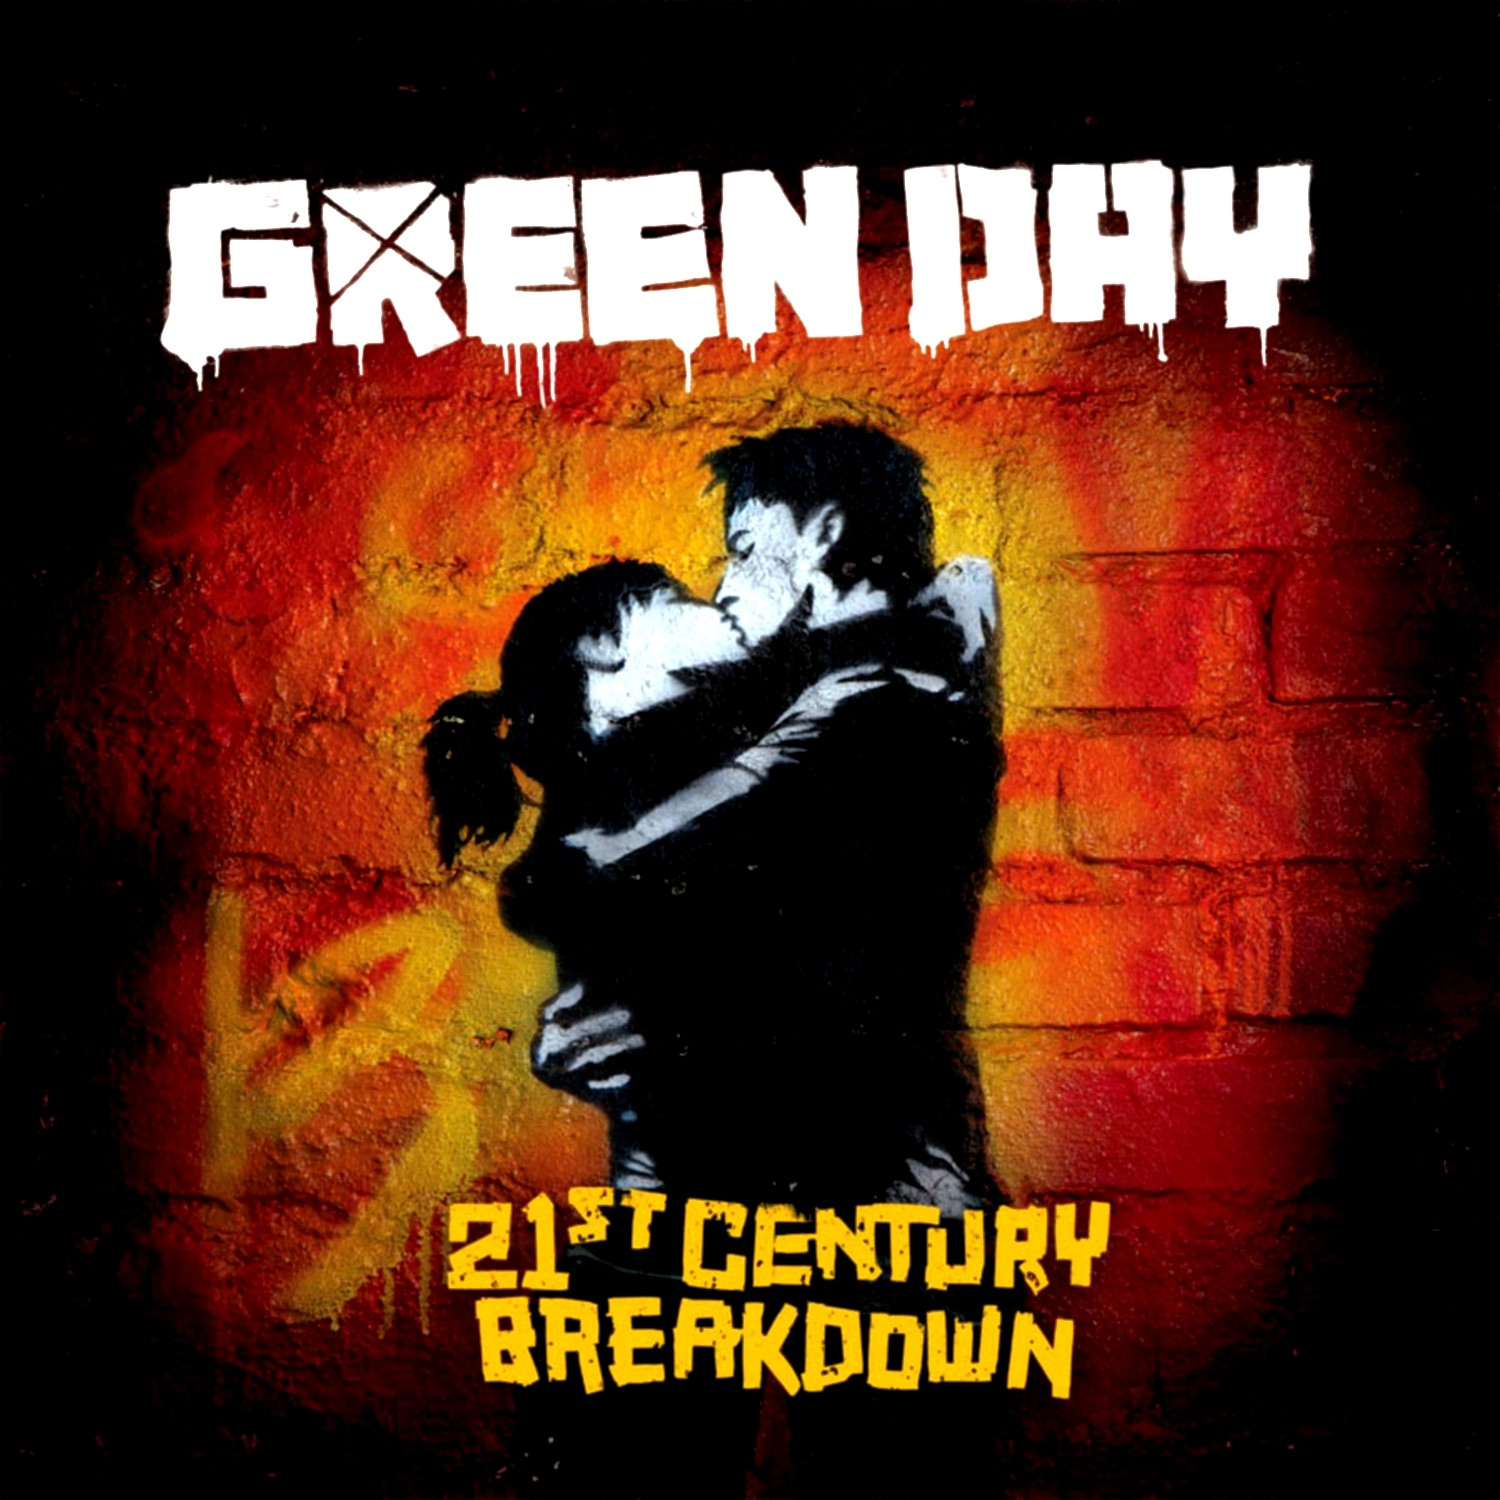 21st Century Breakdown Album Album 21st Century Breakdown